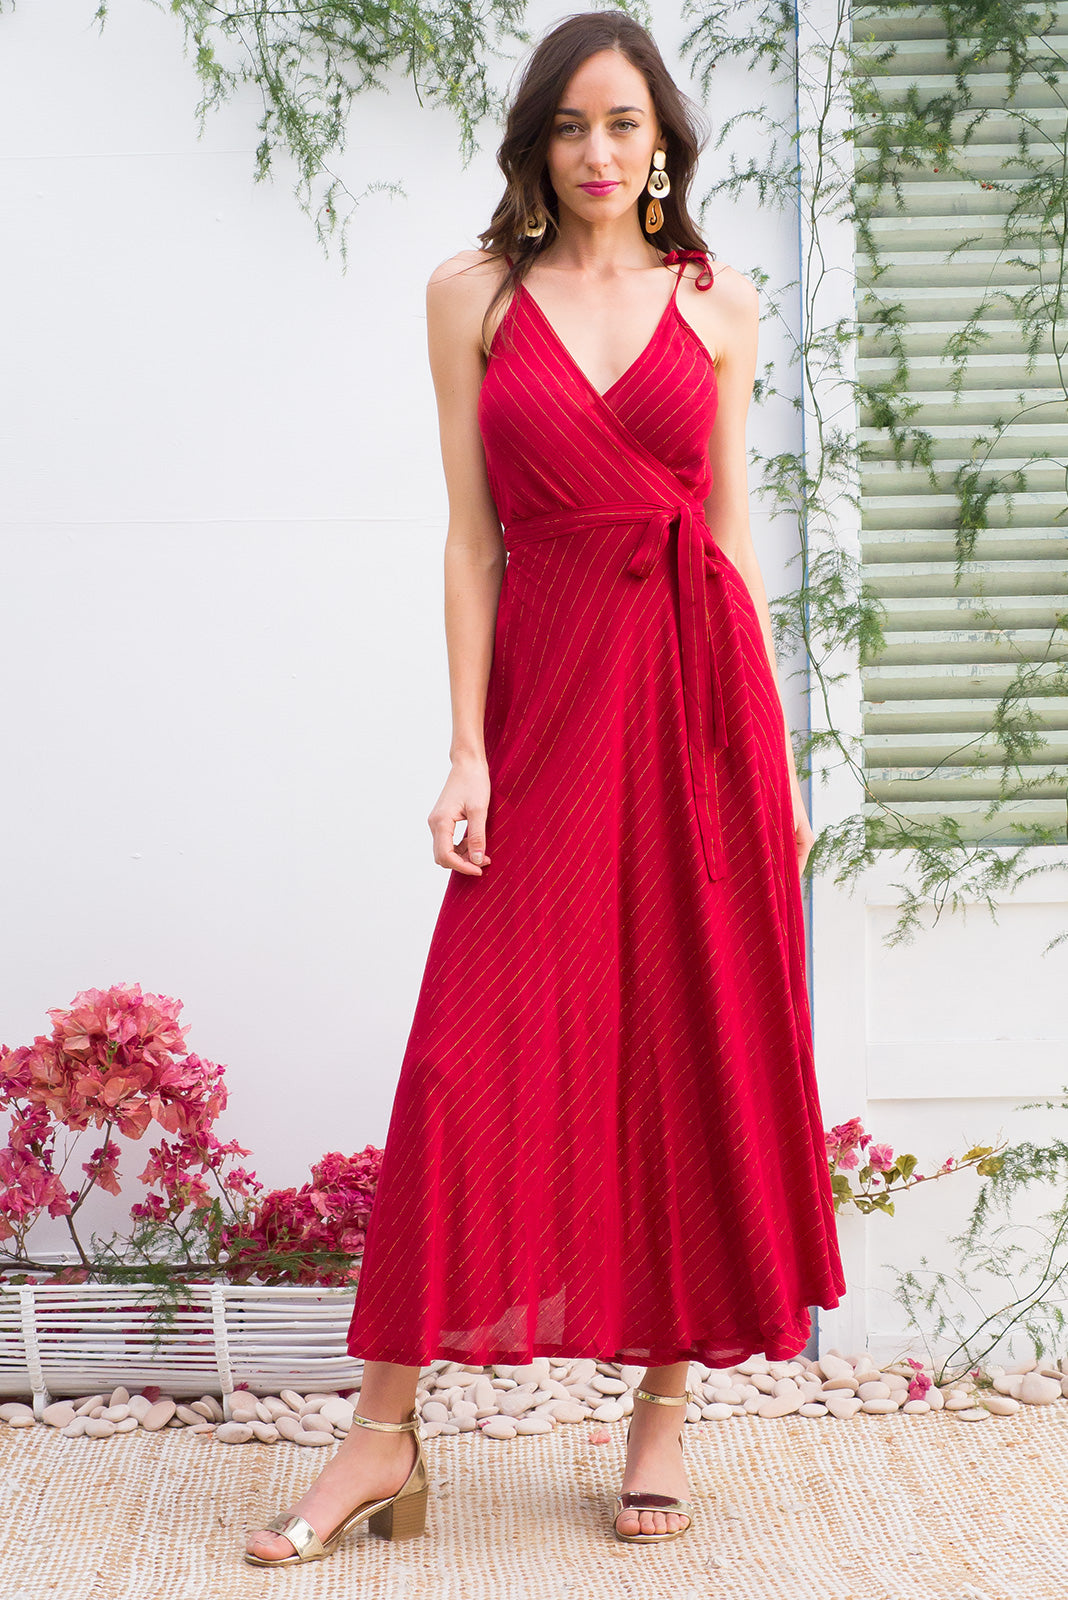 Byron Berry Red and Golden Threads Maxi Wrap Dress with adjustable straps in a bright red crinkle texture woven rayon with a golden lurex thread